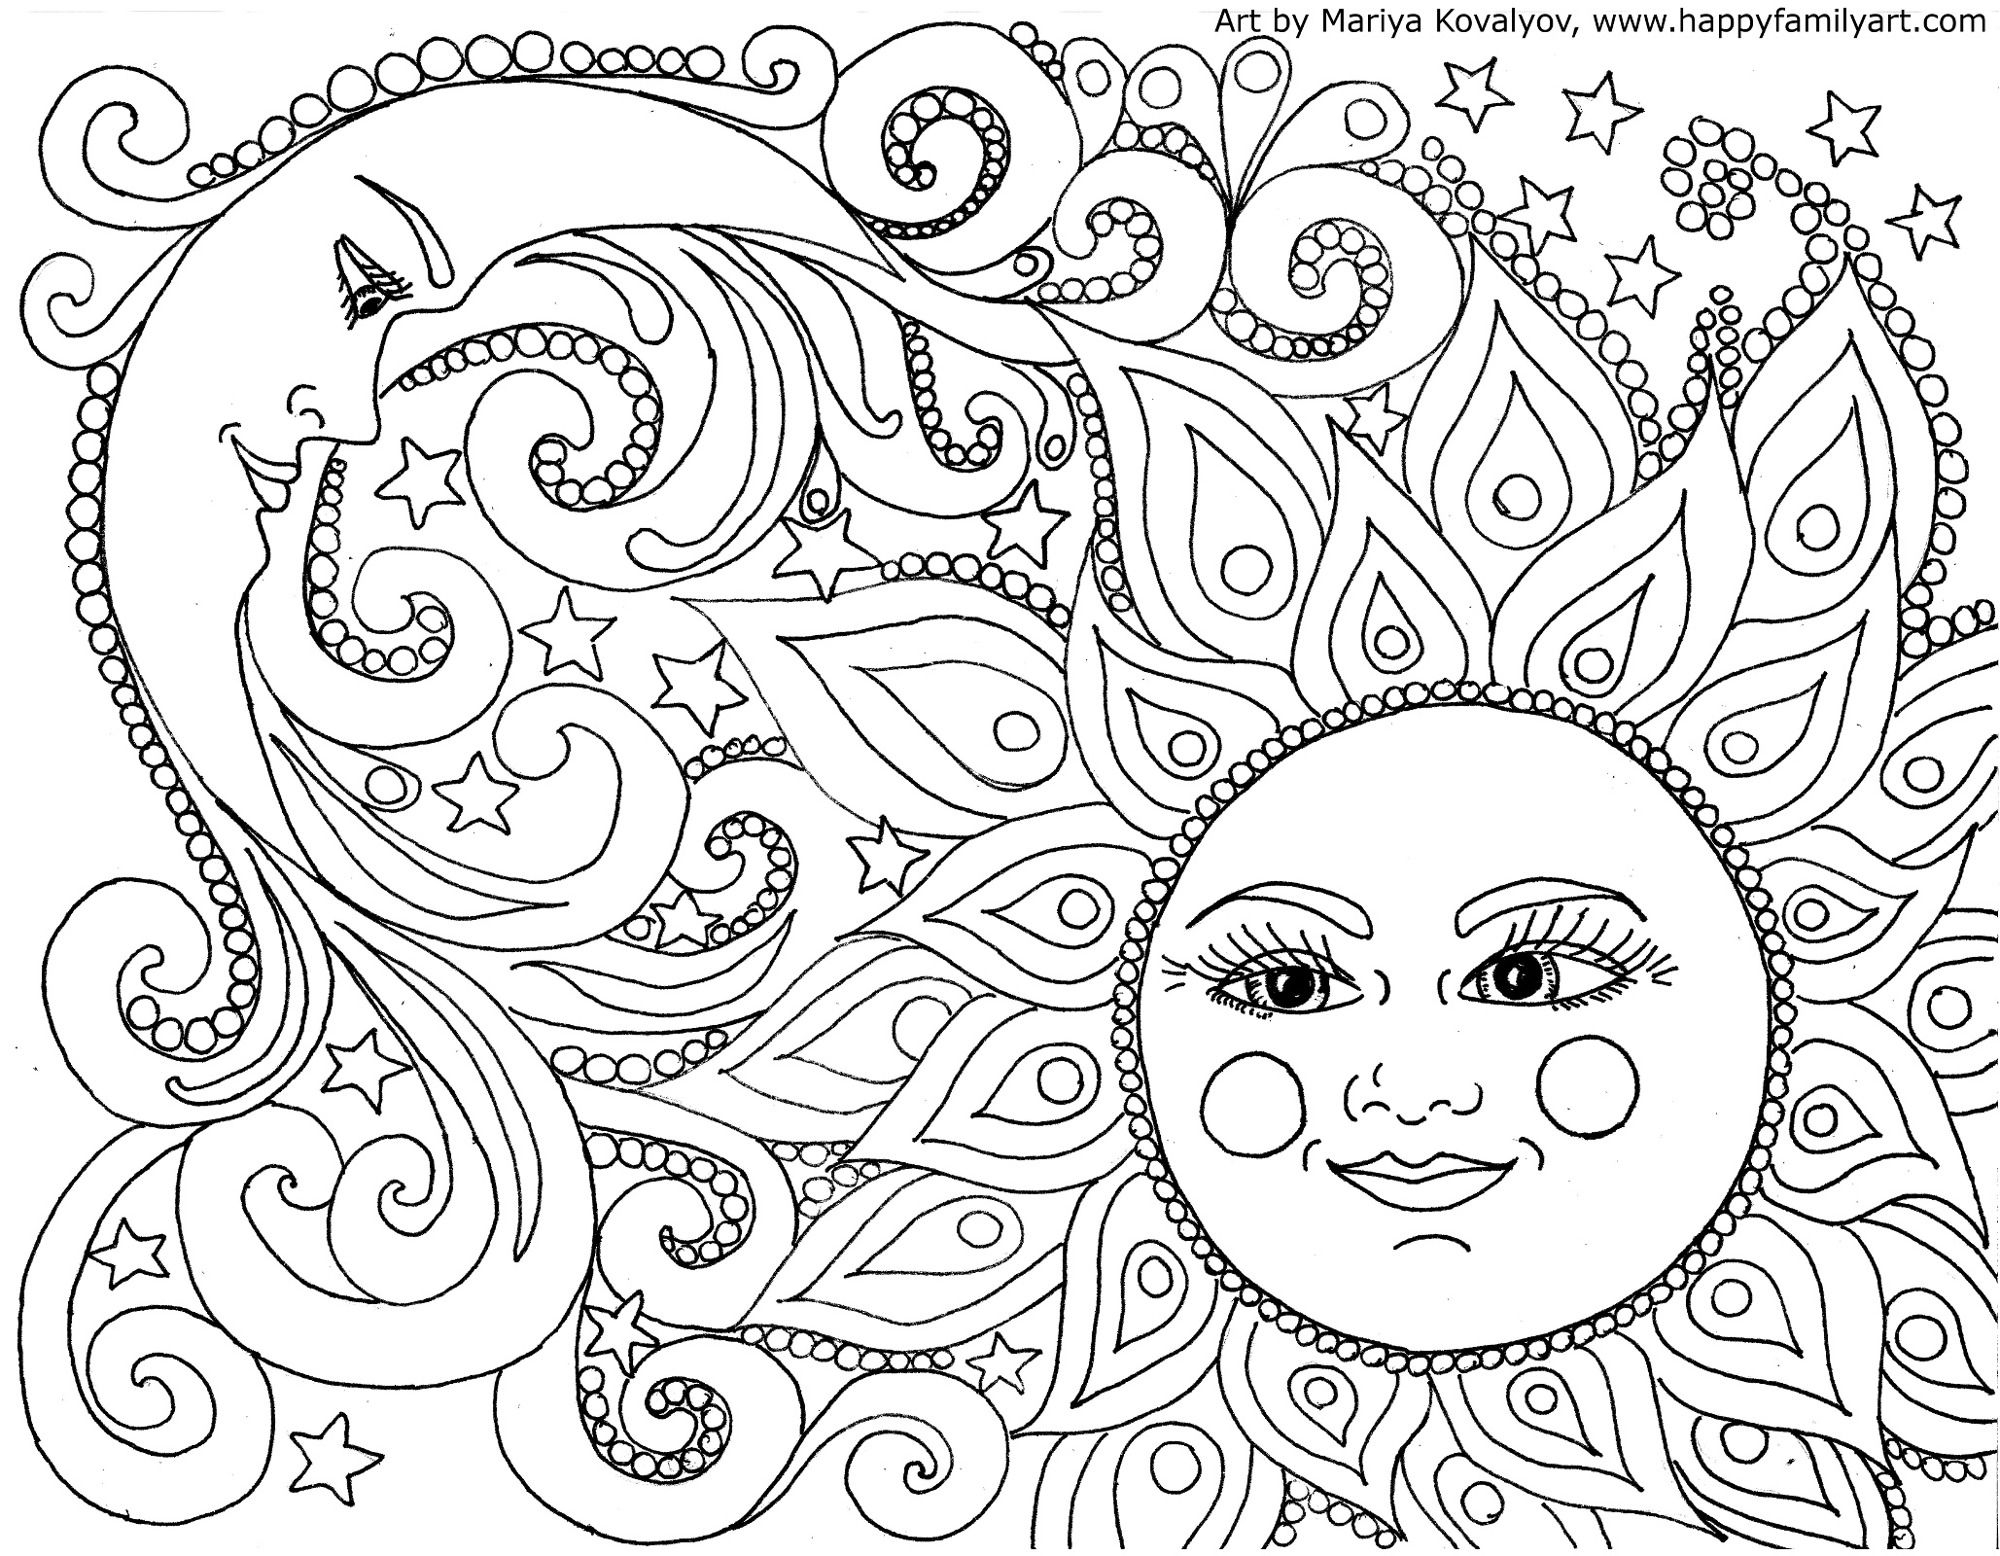 2000x1556 Printable Full Size Coloring Pages For Adults Free Printable